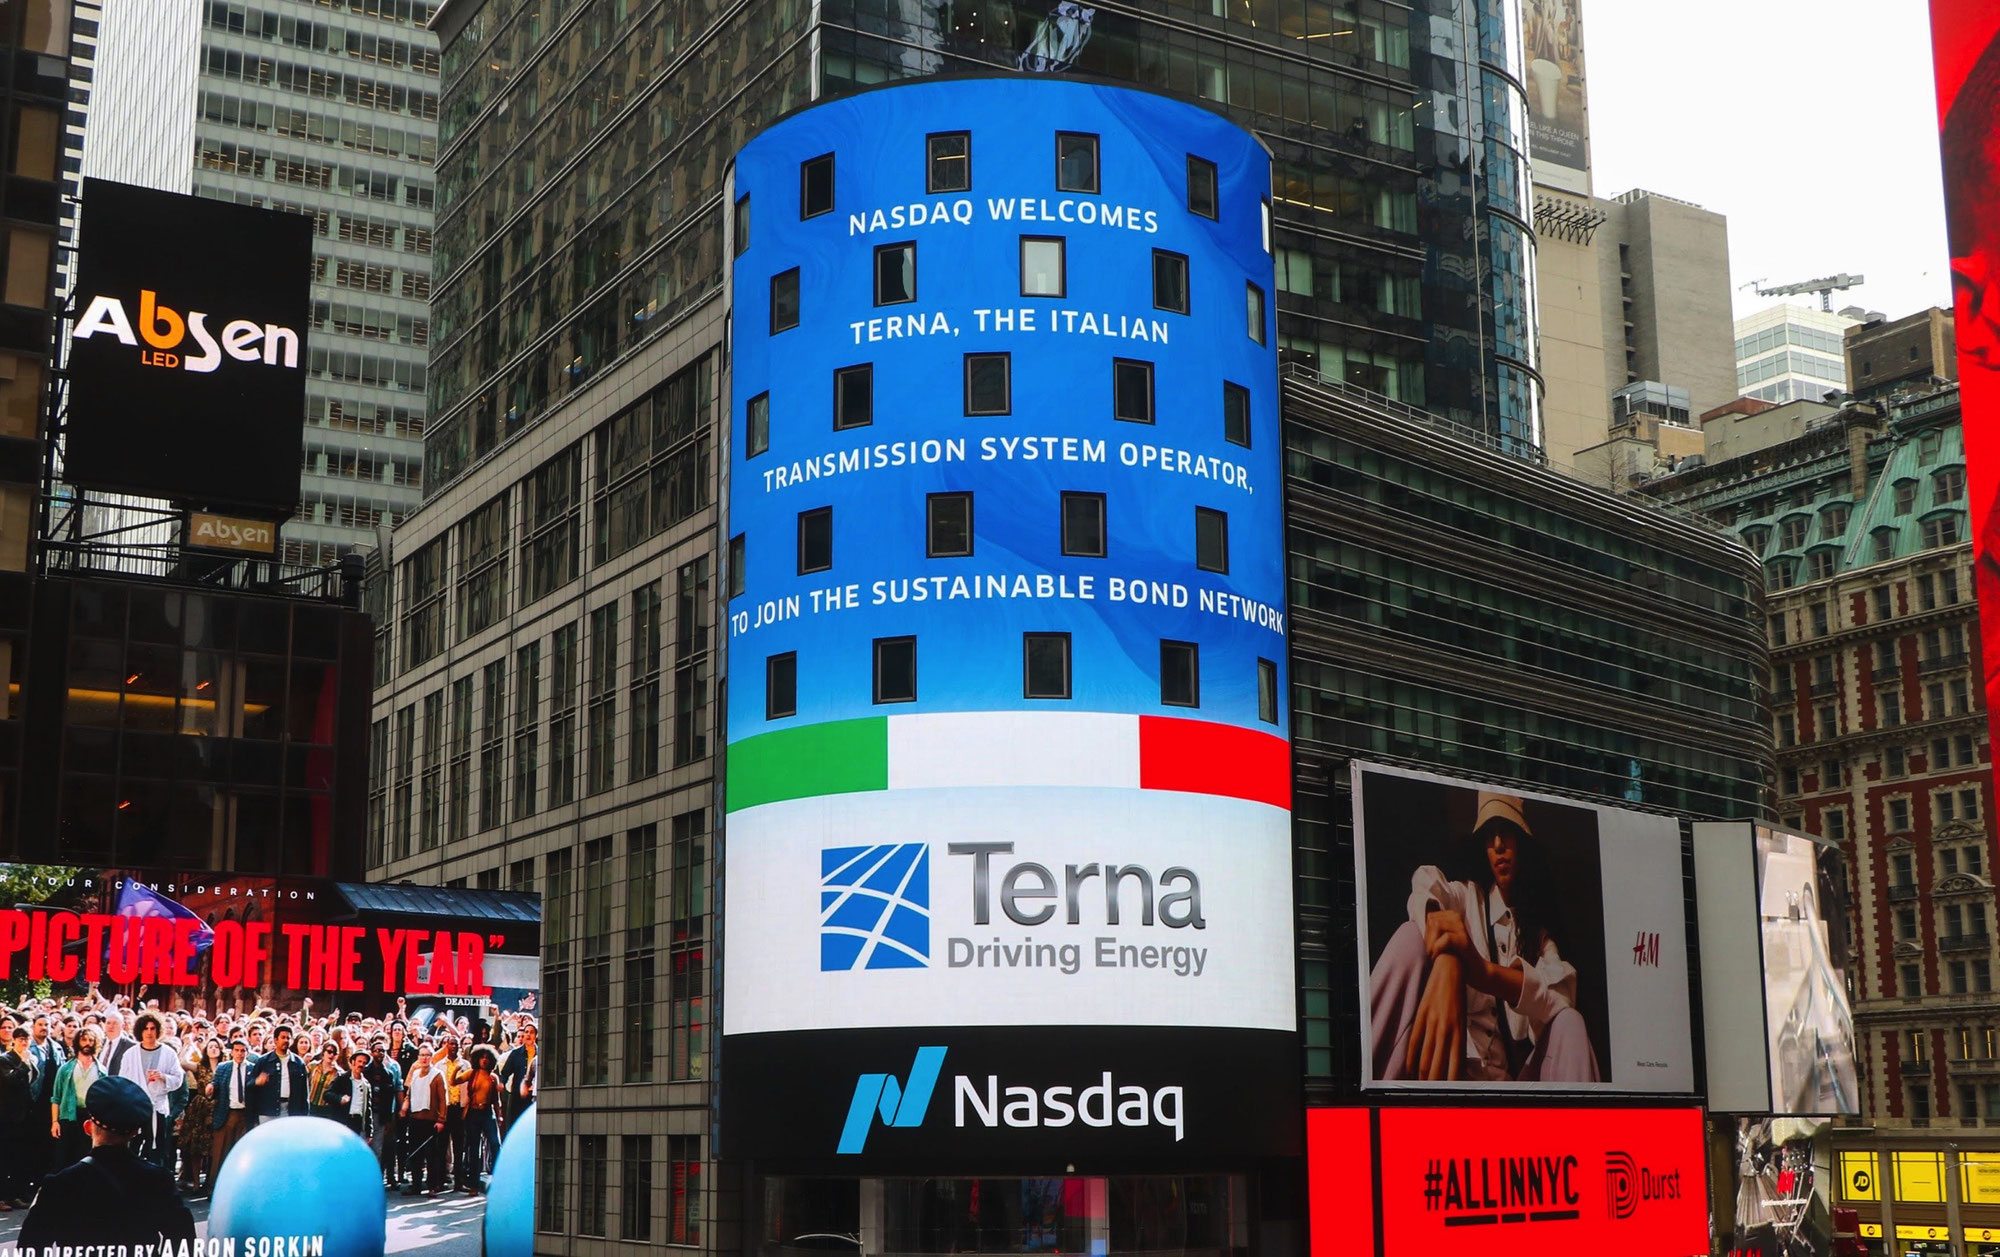 TERNA PRIMA ELECTRIC UTILITY ITALIANA AD ADERIRE AL NASDAQ SUSTAINABLE BOND NETWORK